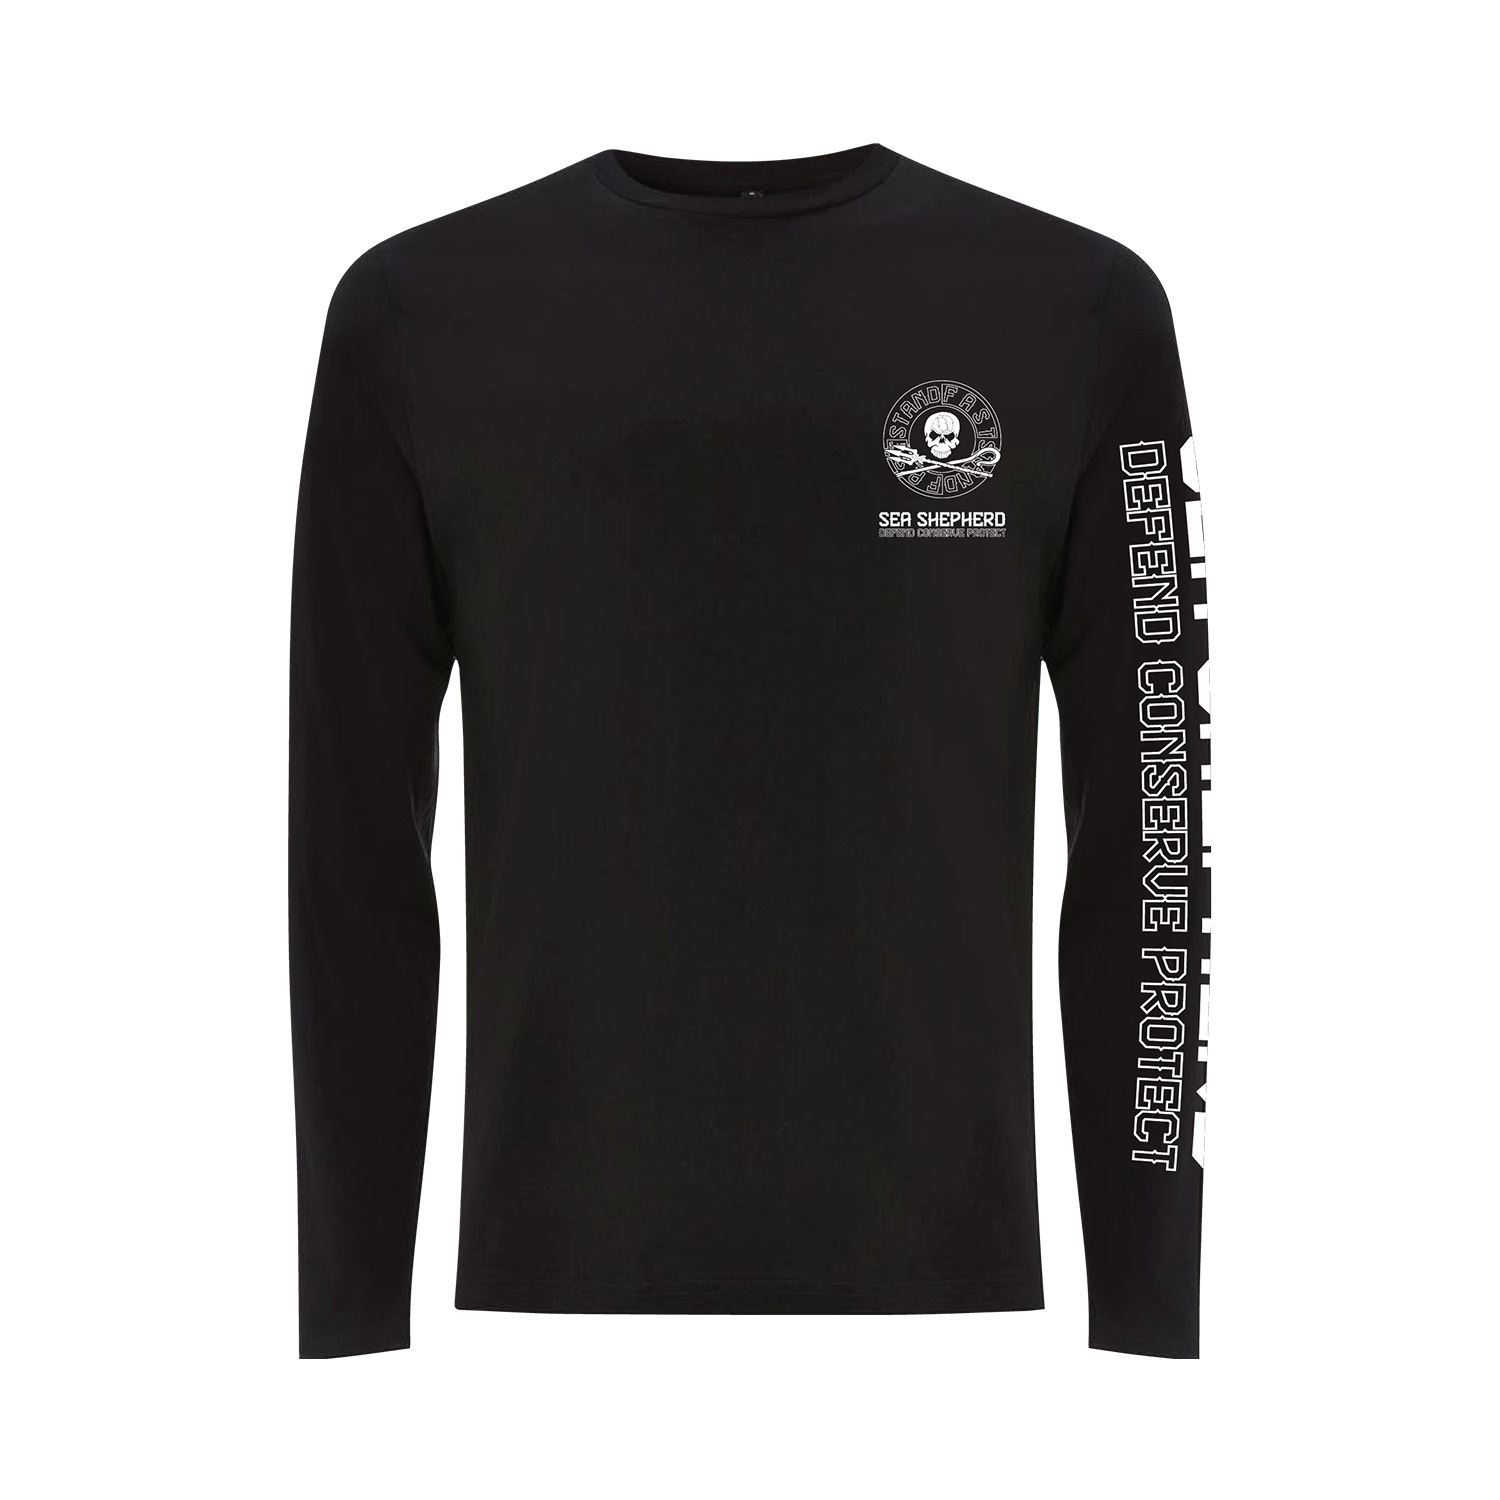 Sea Shepherd - Standfast - Ships Cargo Stamp - 100% Organic Cotton L/S Tee - Black